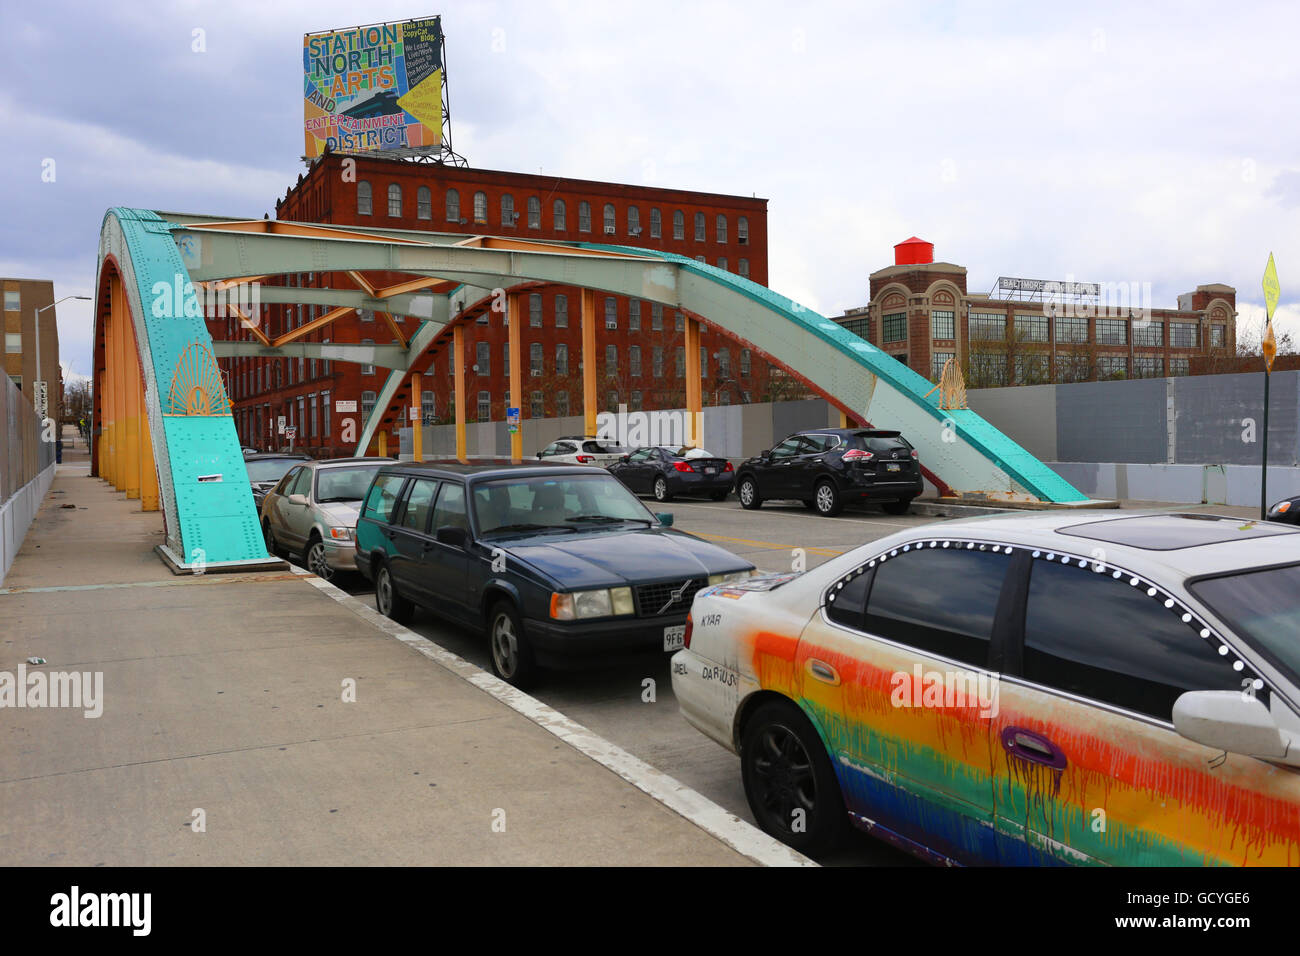 Station North Arts district in Baltimore with the Design school in the background - Stock Image